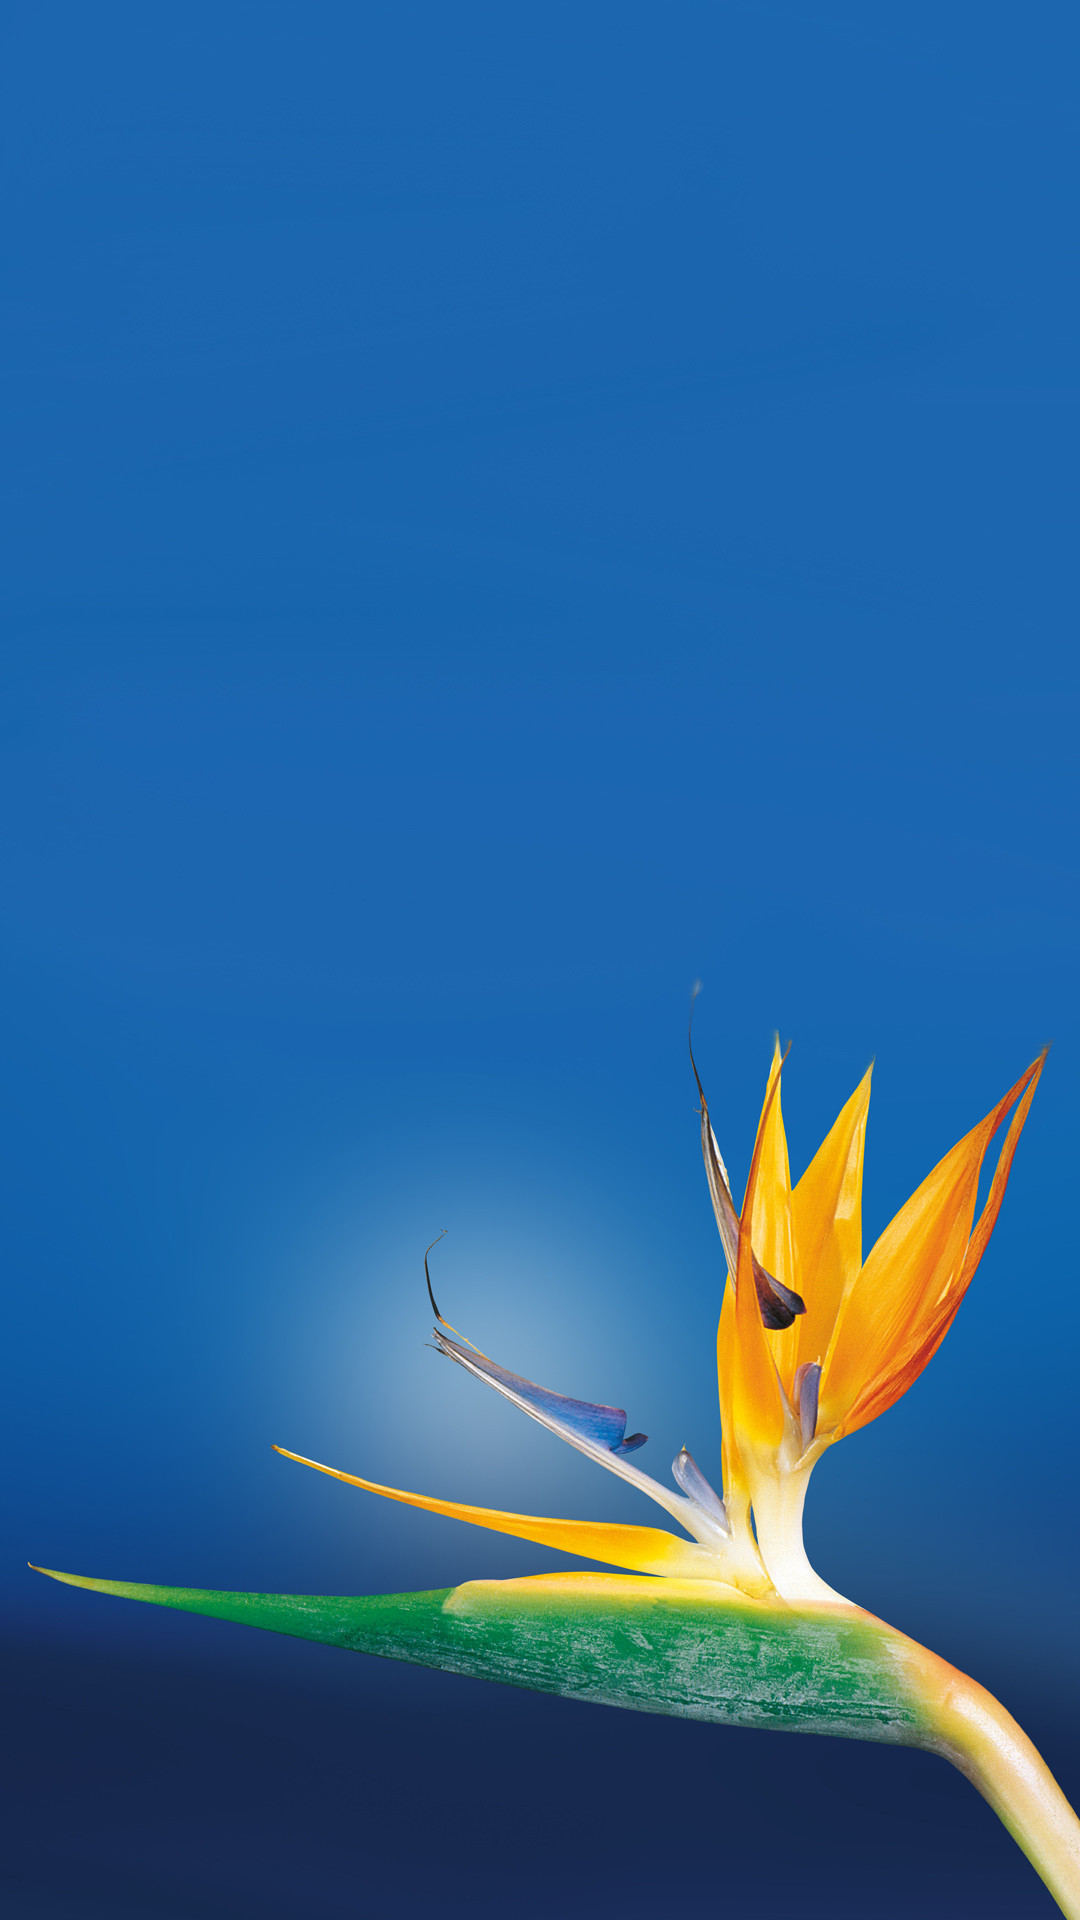 Bird Of Paradise Flower Close Up iPhone 6 Plus HD Wallpaper …